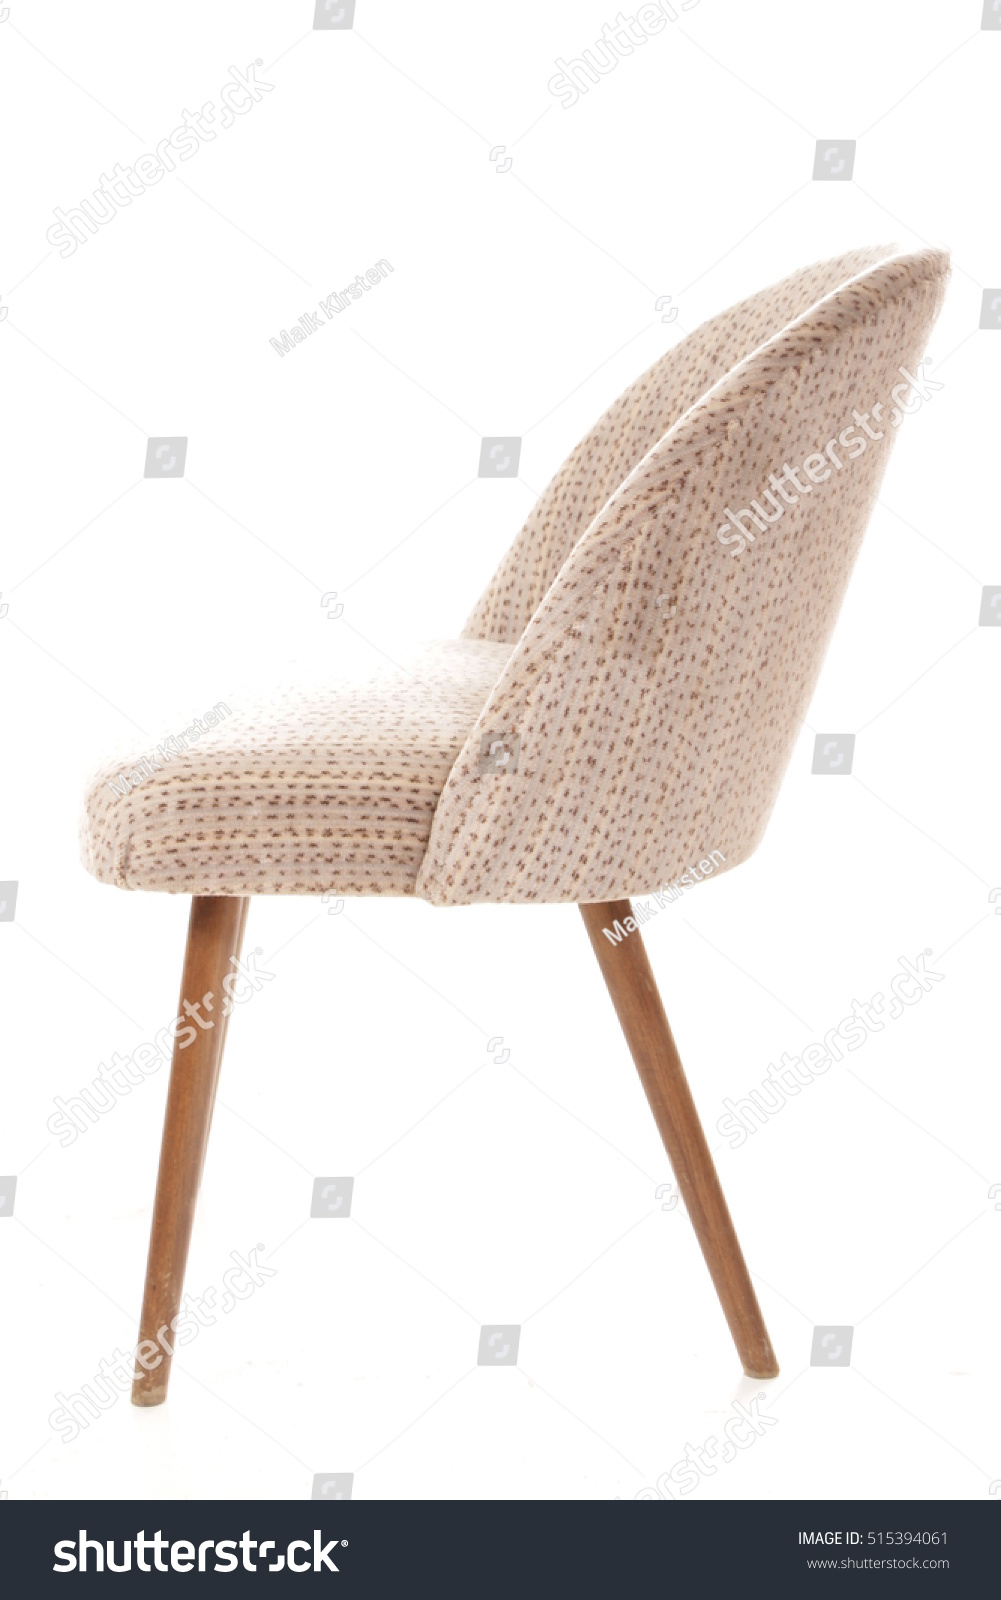 Alter Stuhl Sessel Alter Sessel Stuhl Chair Stock Photo Edit Now 515394061